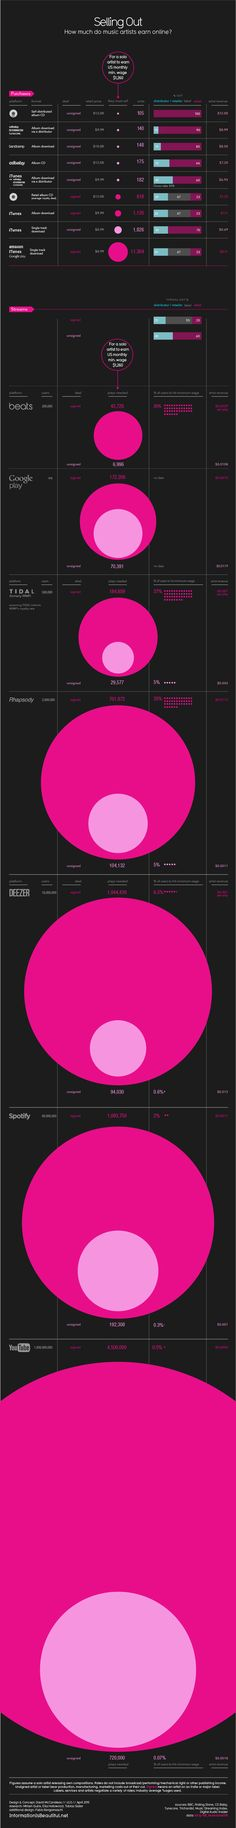 #INFOGRAPHIC: Here's how much musicians make online from Spotify, iTunes & YouTube